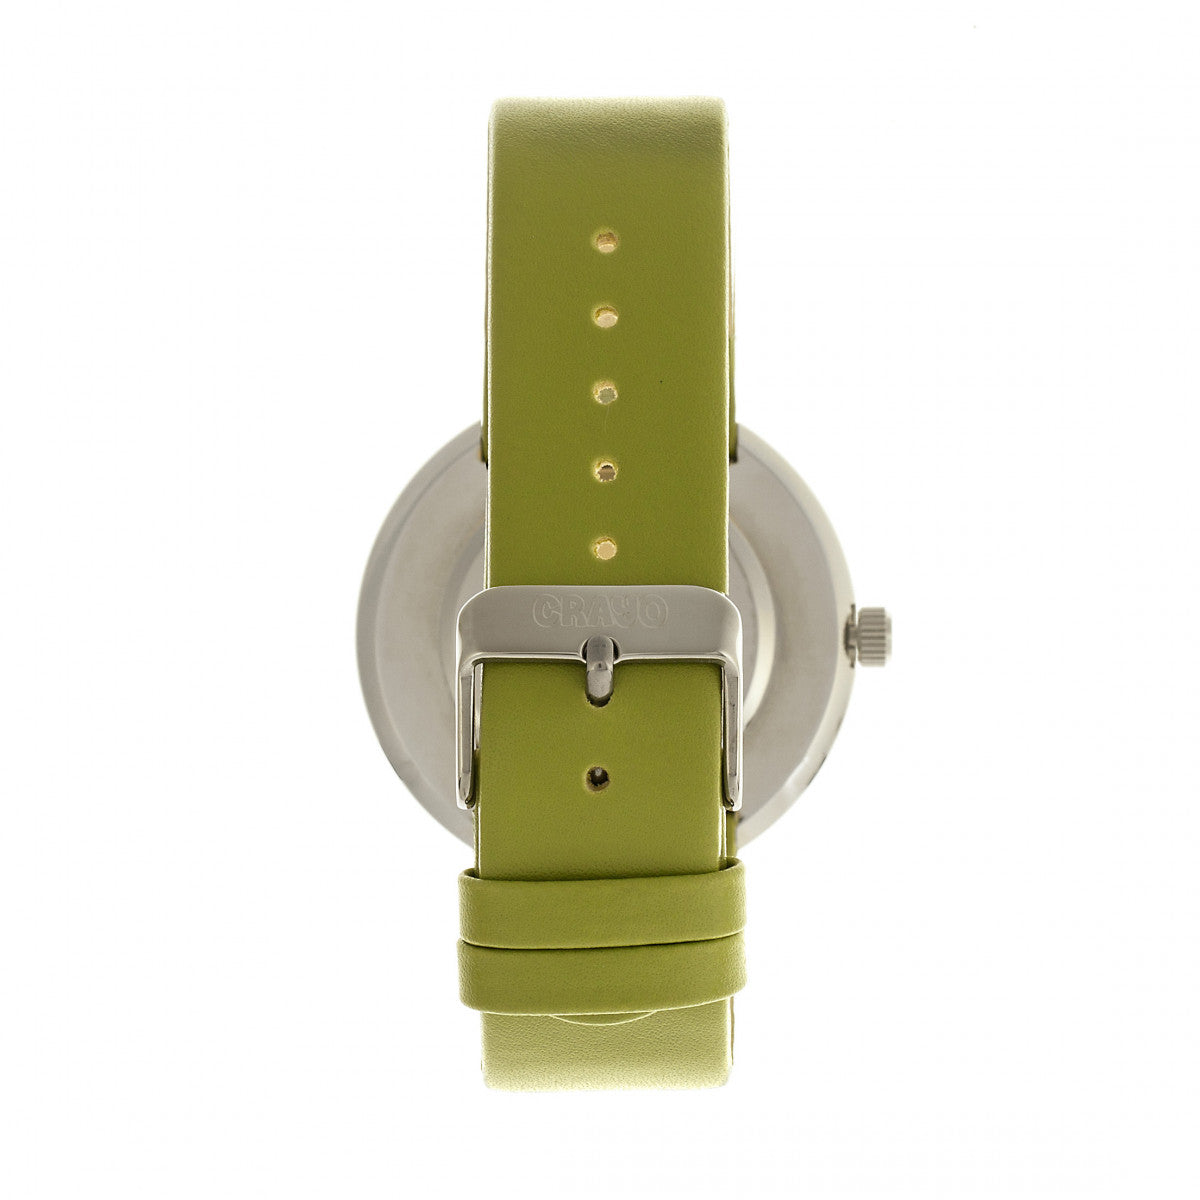 Crayo Button Leather-Band Unisex Watch w/ Day/Date - Green - CRACR0203